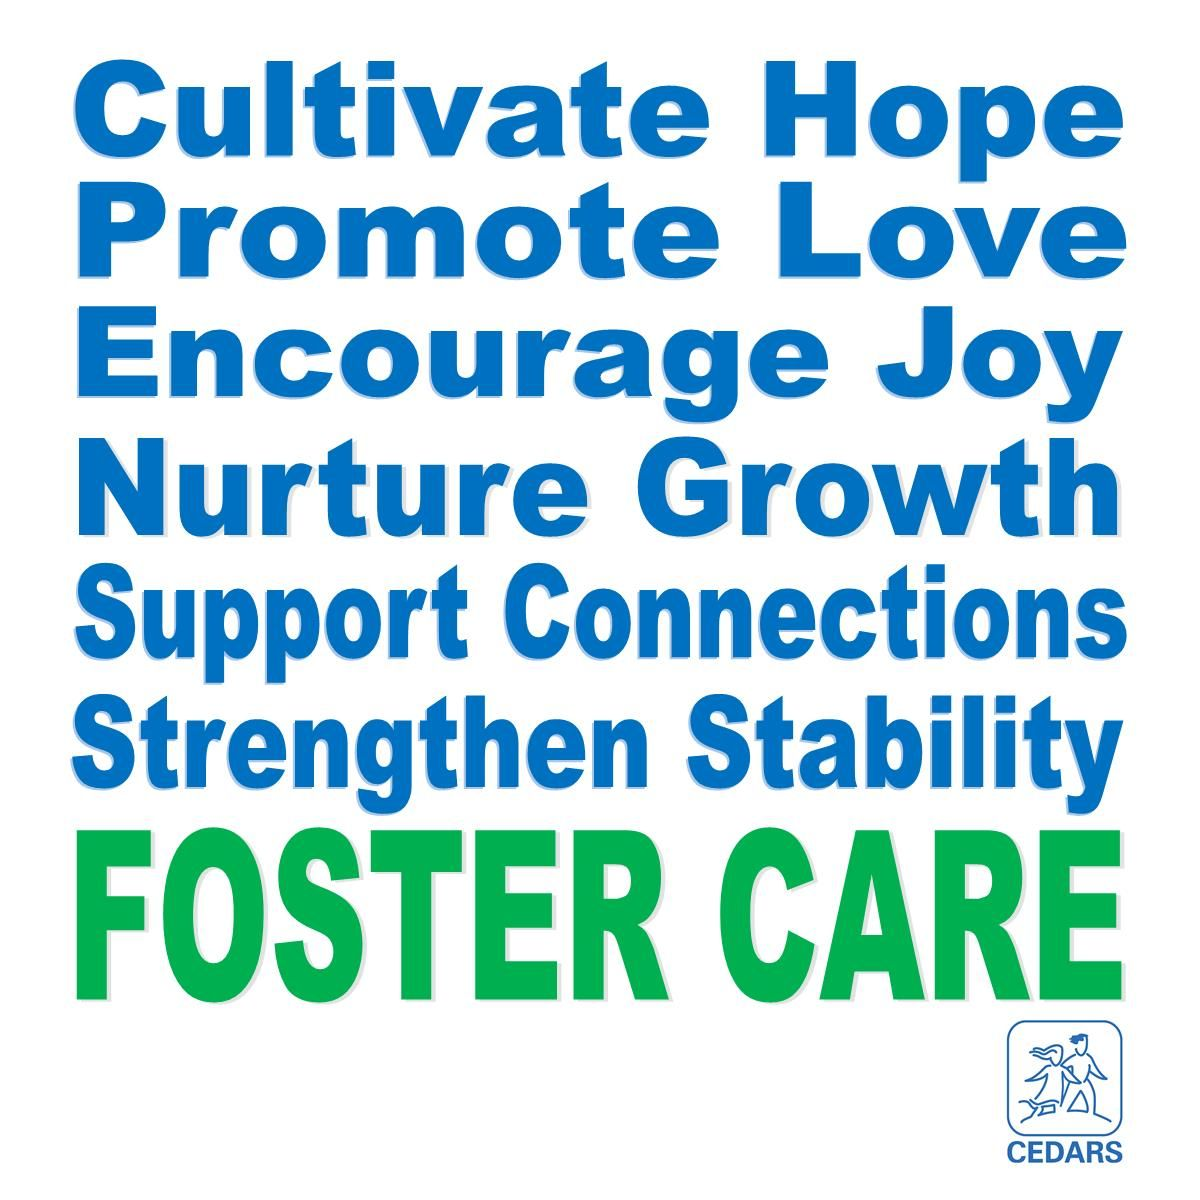 All these things.. The fosters, Foster care, Words